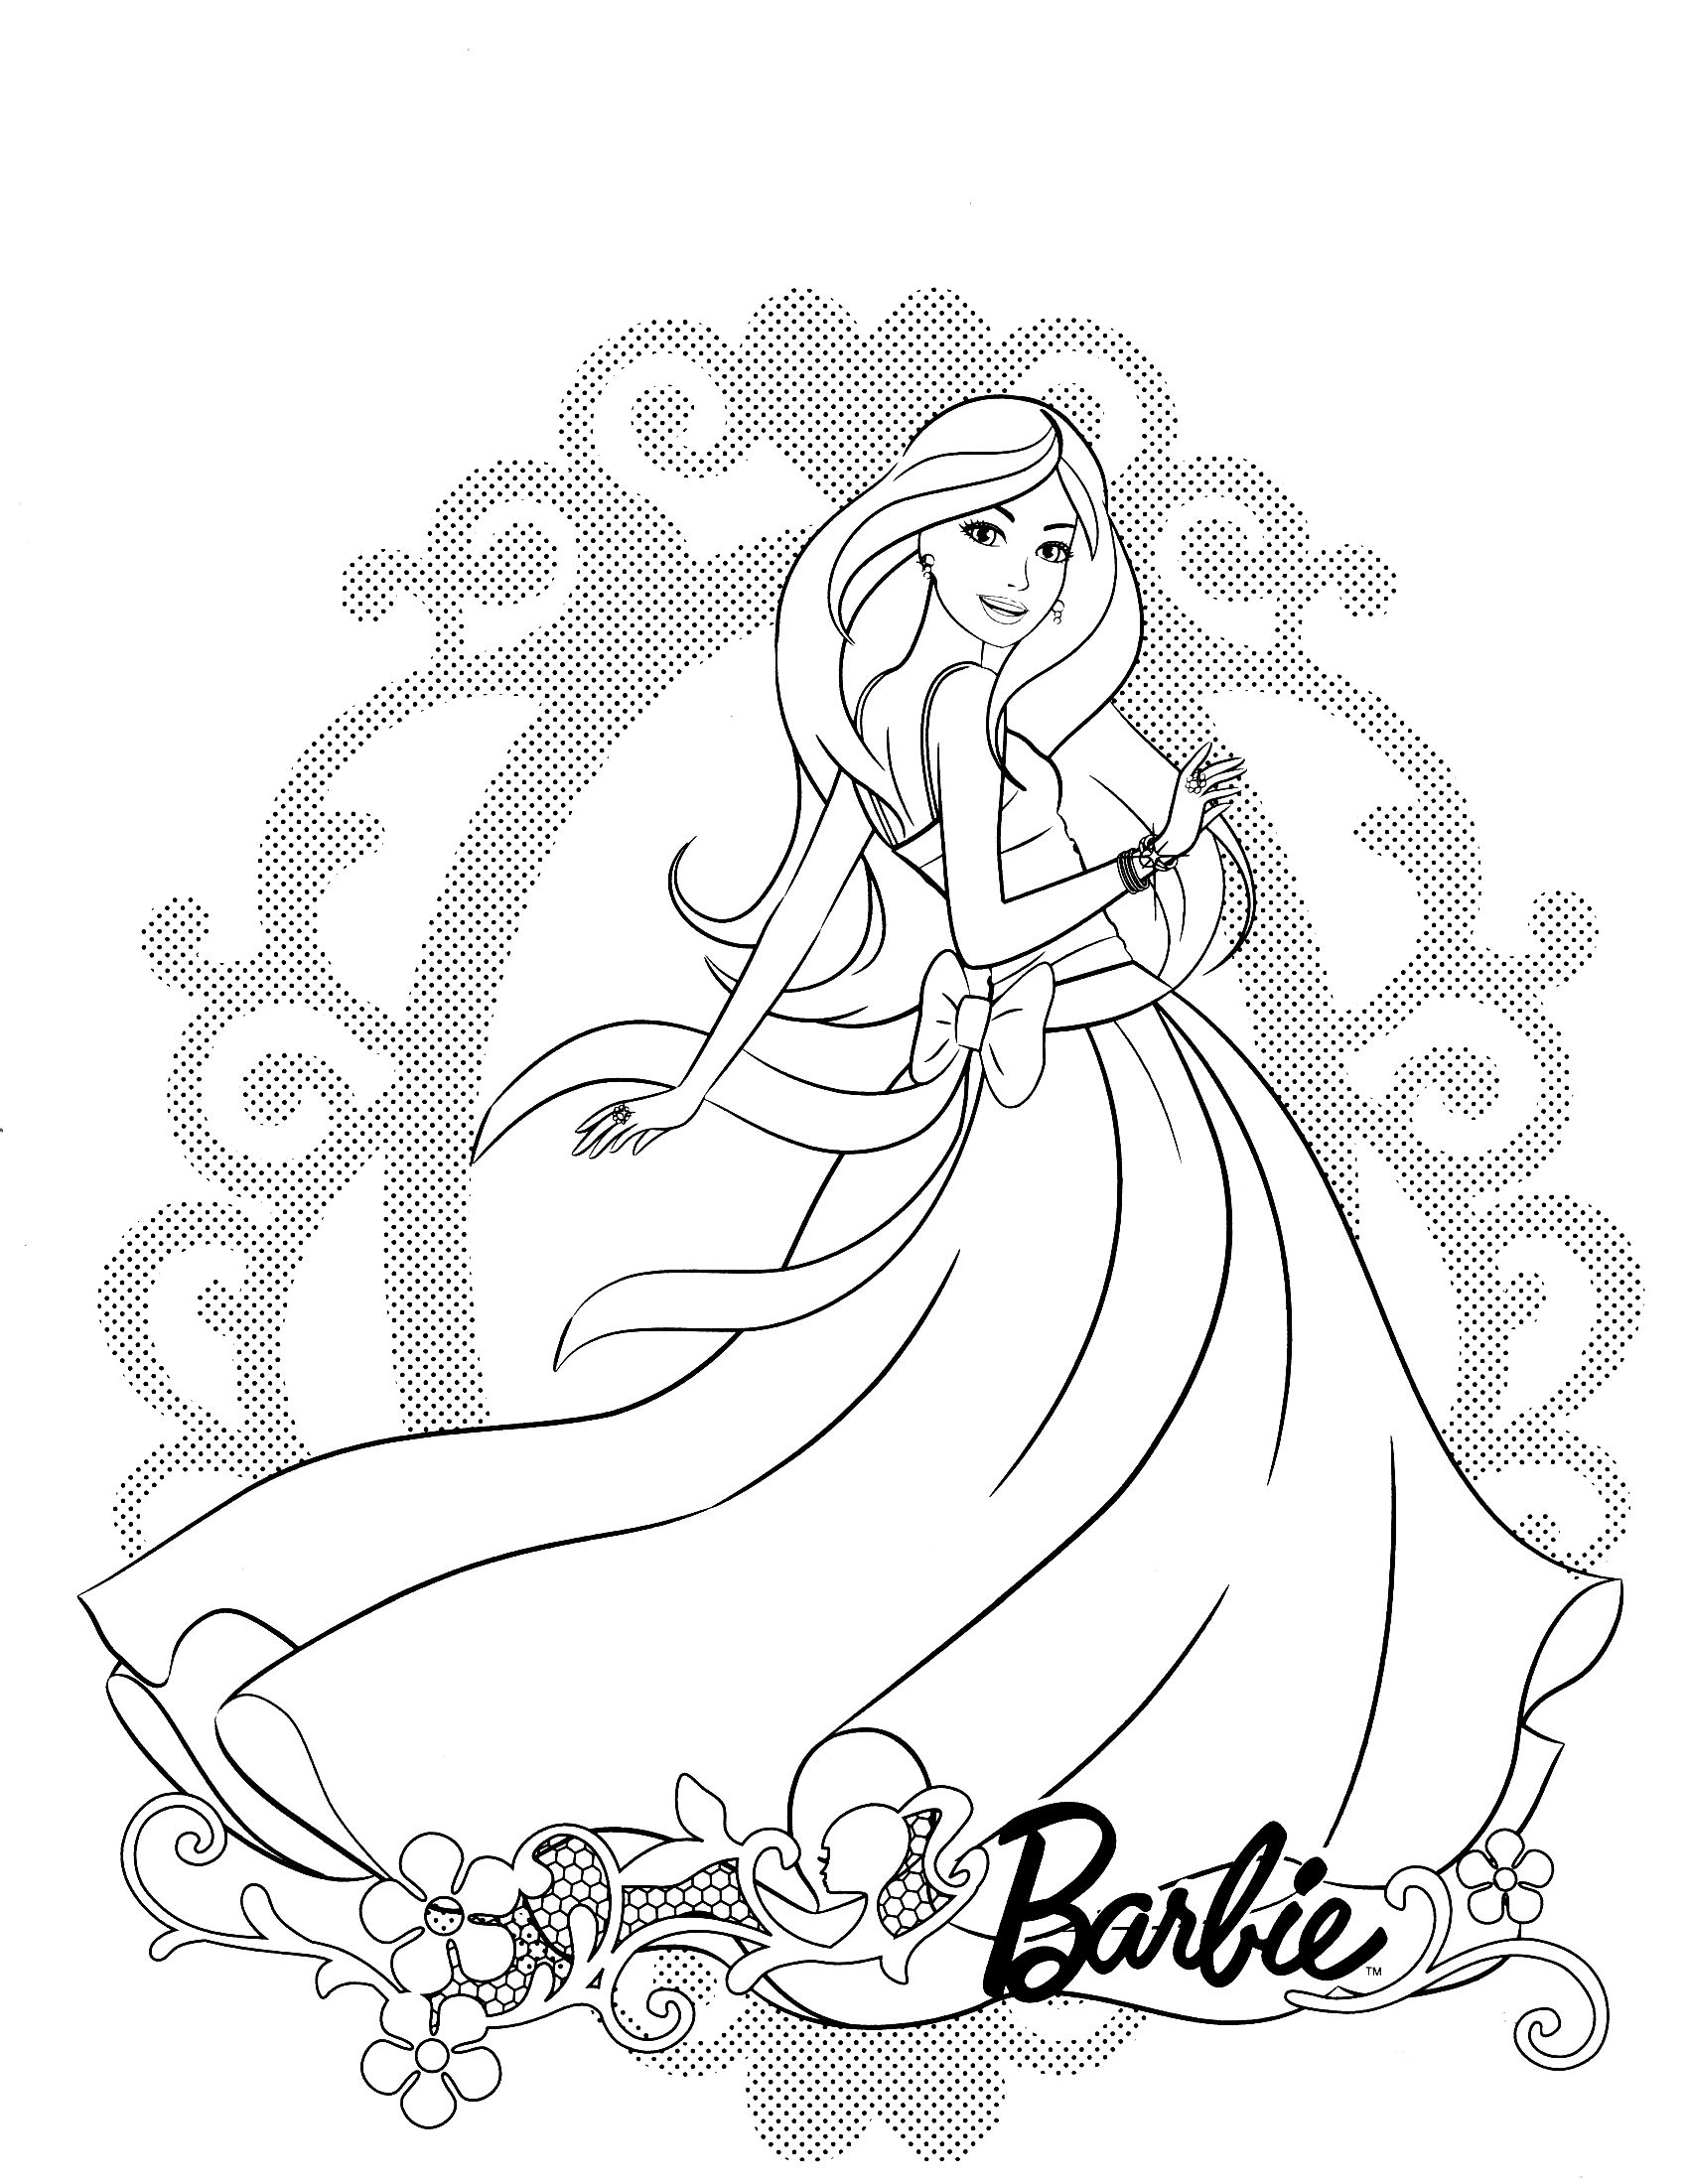 Princess house coloring pages - Barbie Dream House Coloring Pages Coloring Pages Wallpaper